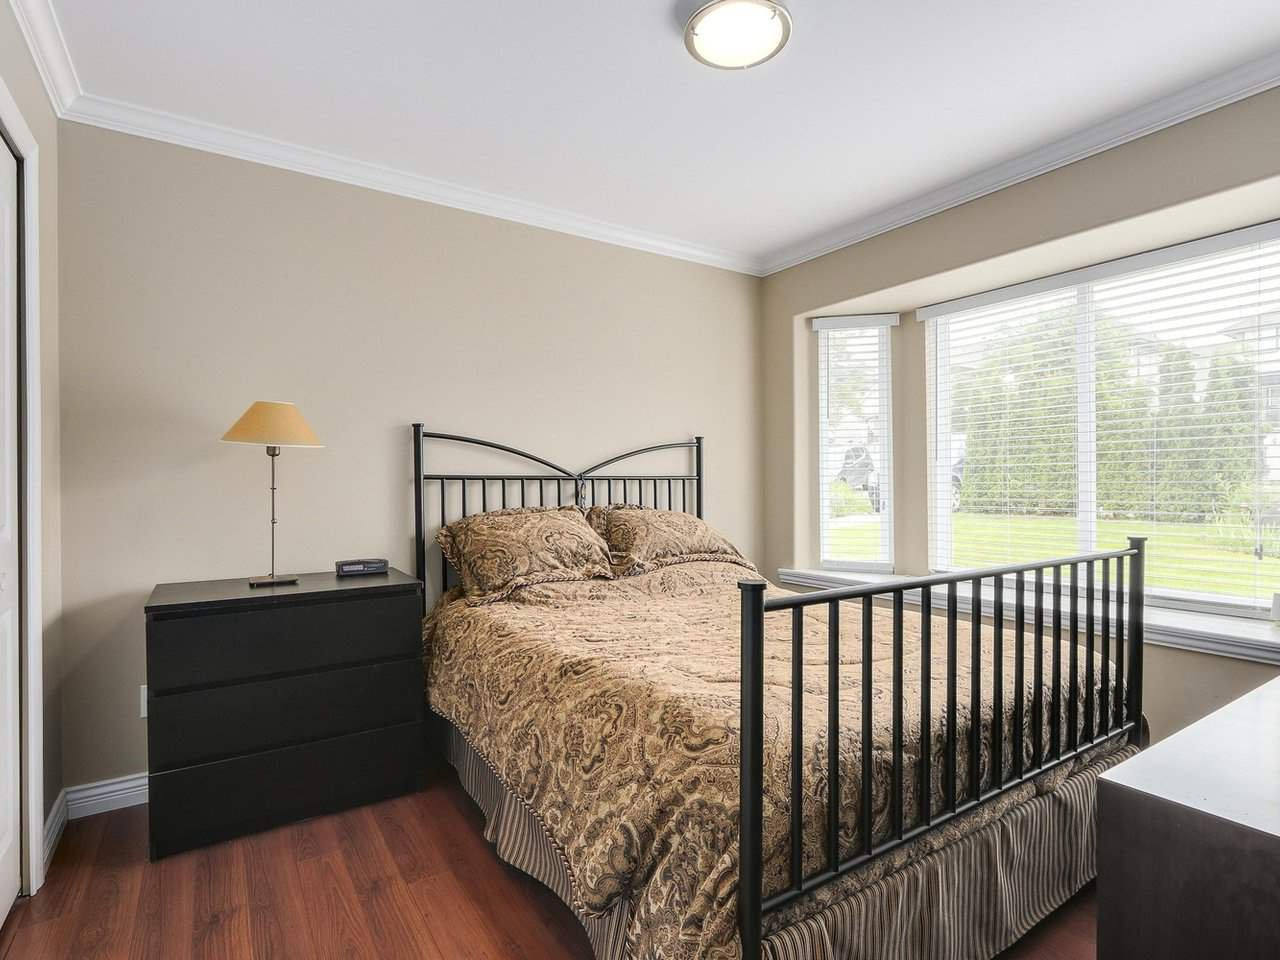 Photo 17: Photos: 1044B CHARLAND Avenue in Coquitlam: Central Coquitlam House 1/2 Duplex for sale : MLS®# R2172343